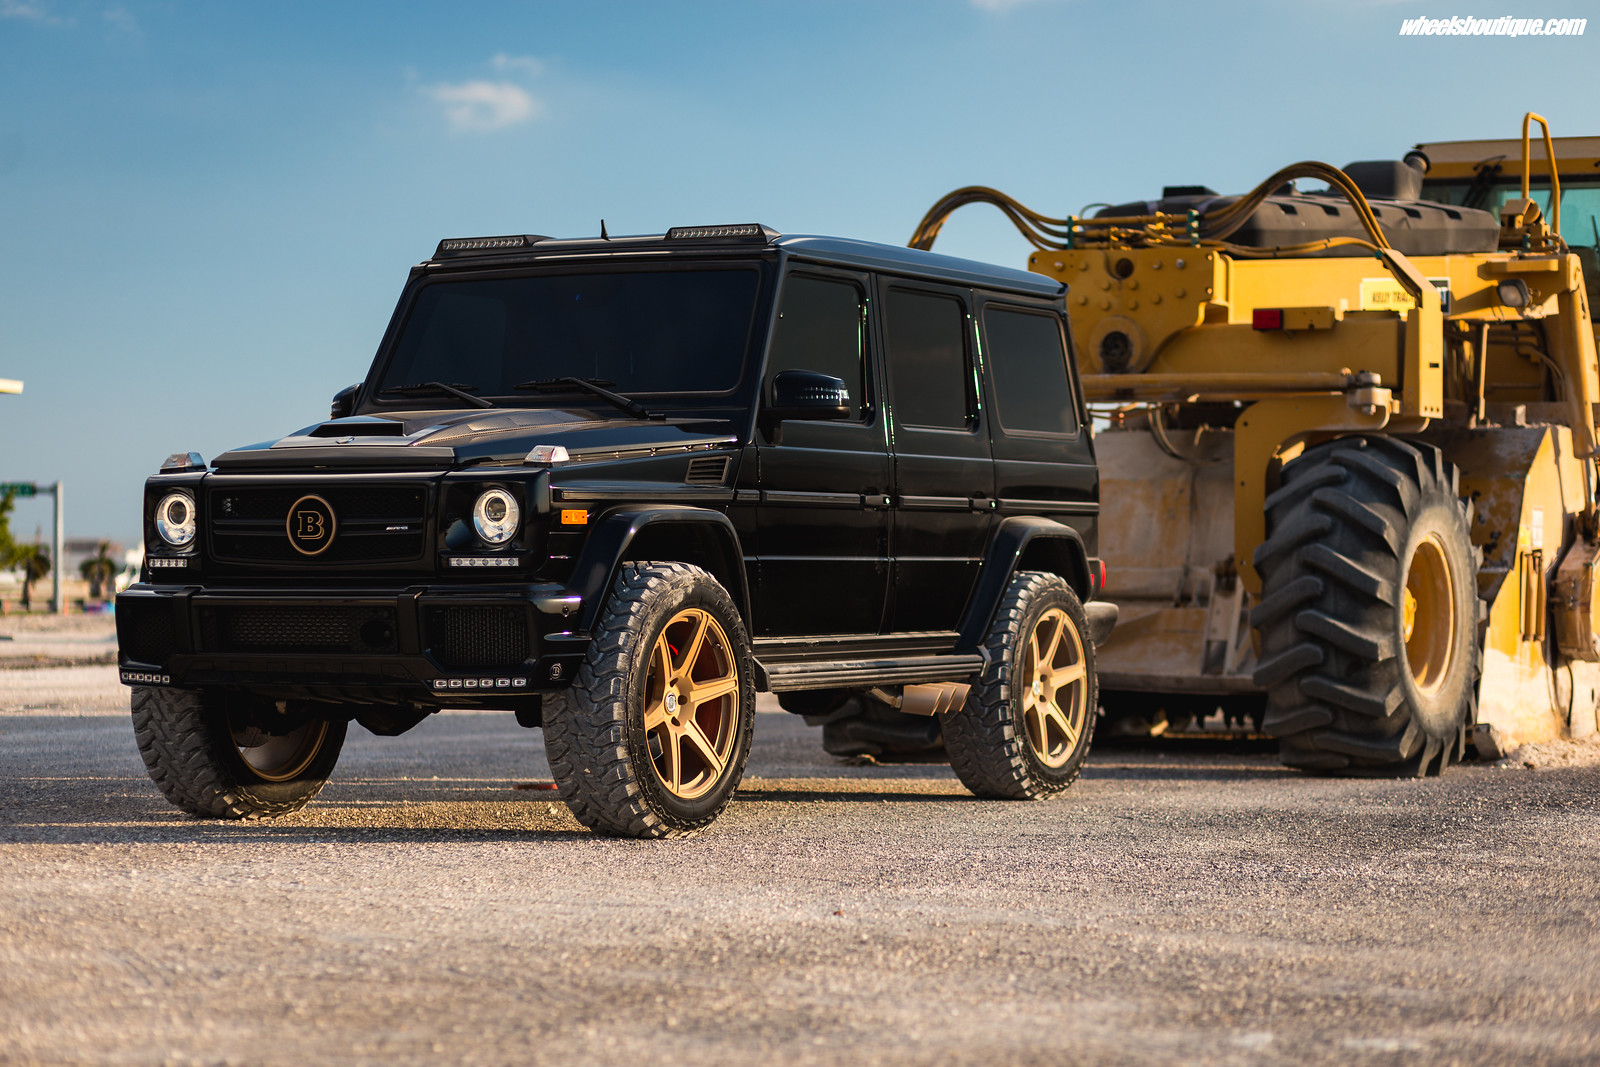 The Brabus Brawler - Another Lifted Mercedes G63 by TeamWB ...